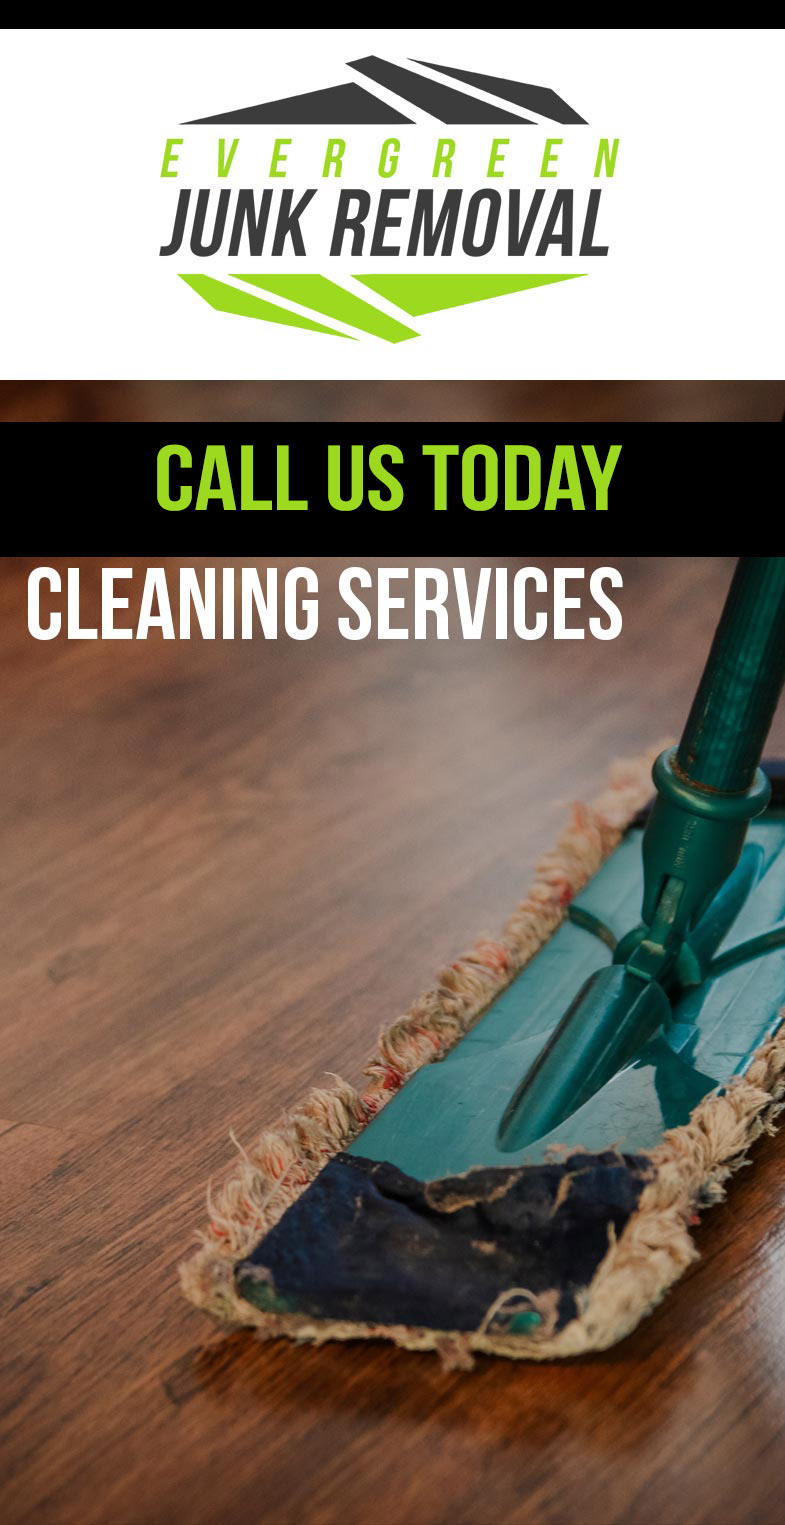 Boulevard Gardens Office Cleaning Services